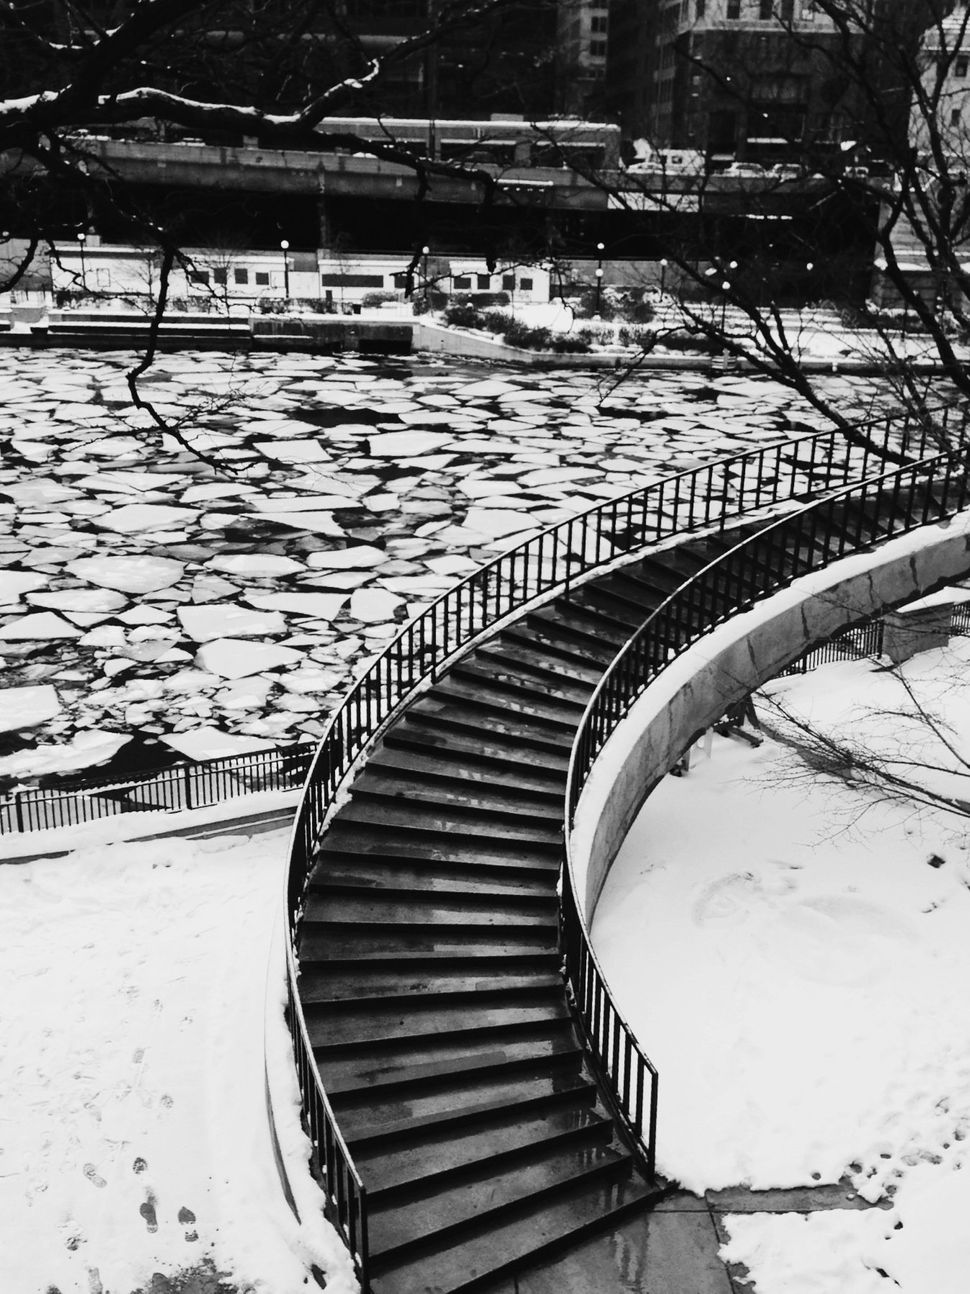 The Chicago River covered in ice planks.